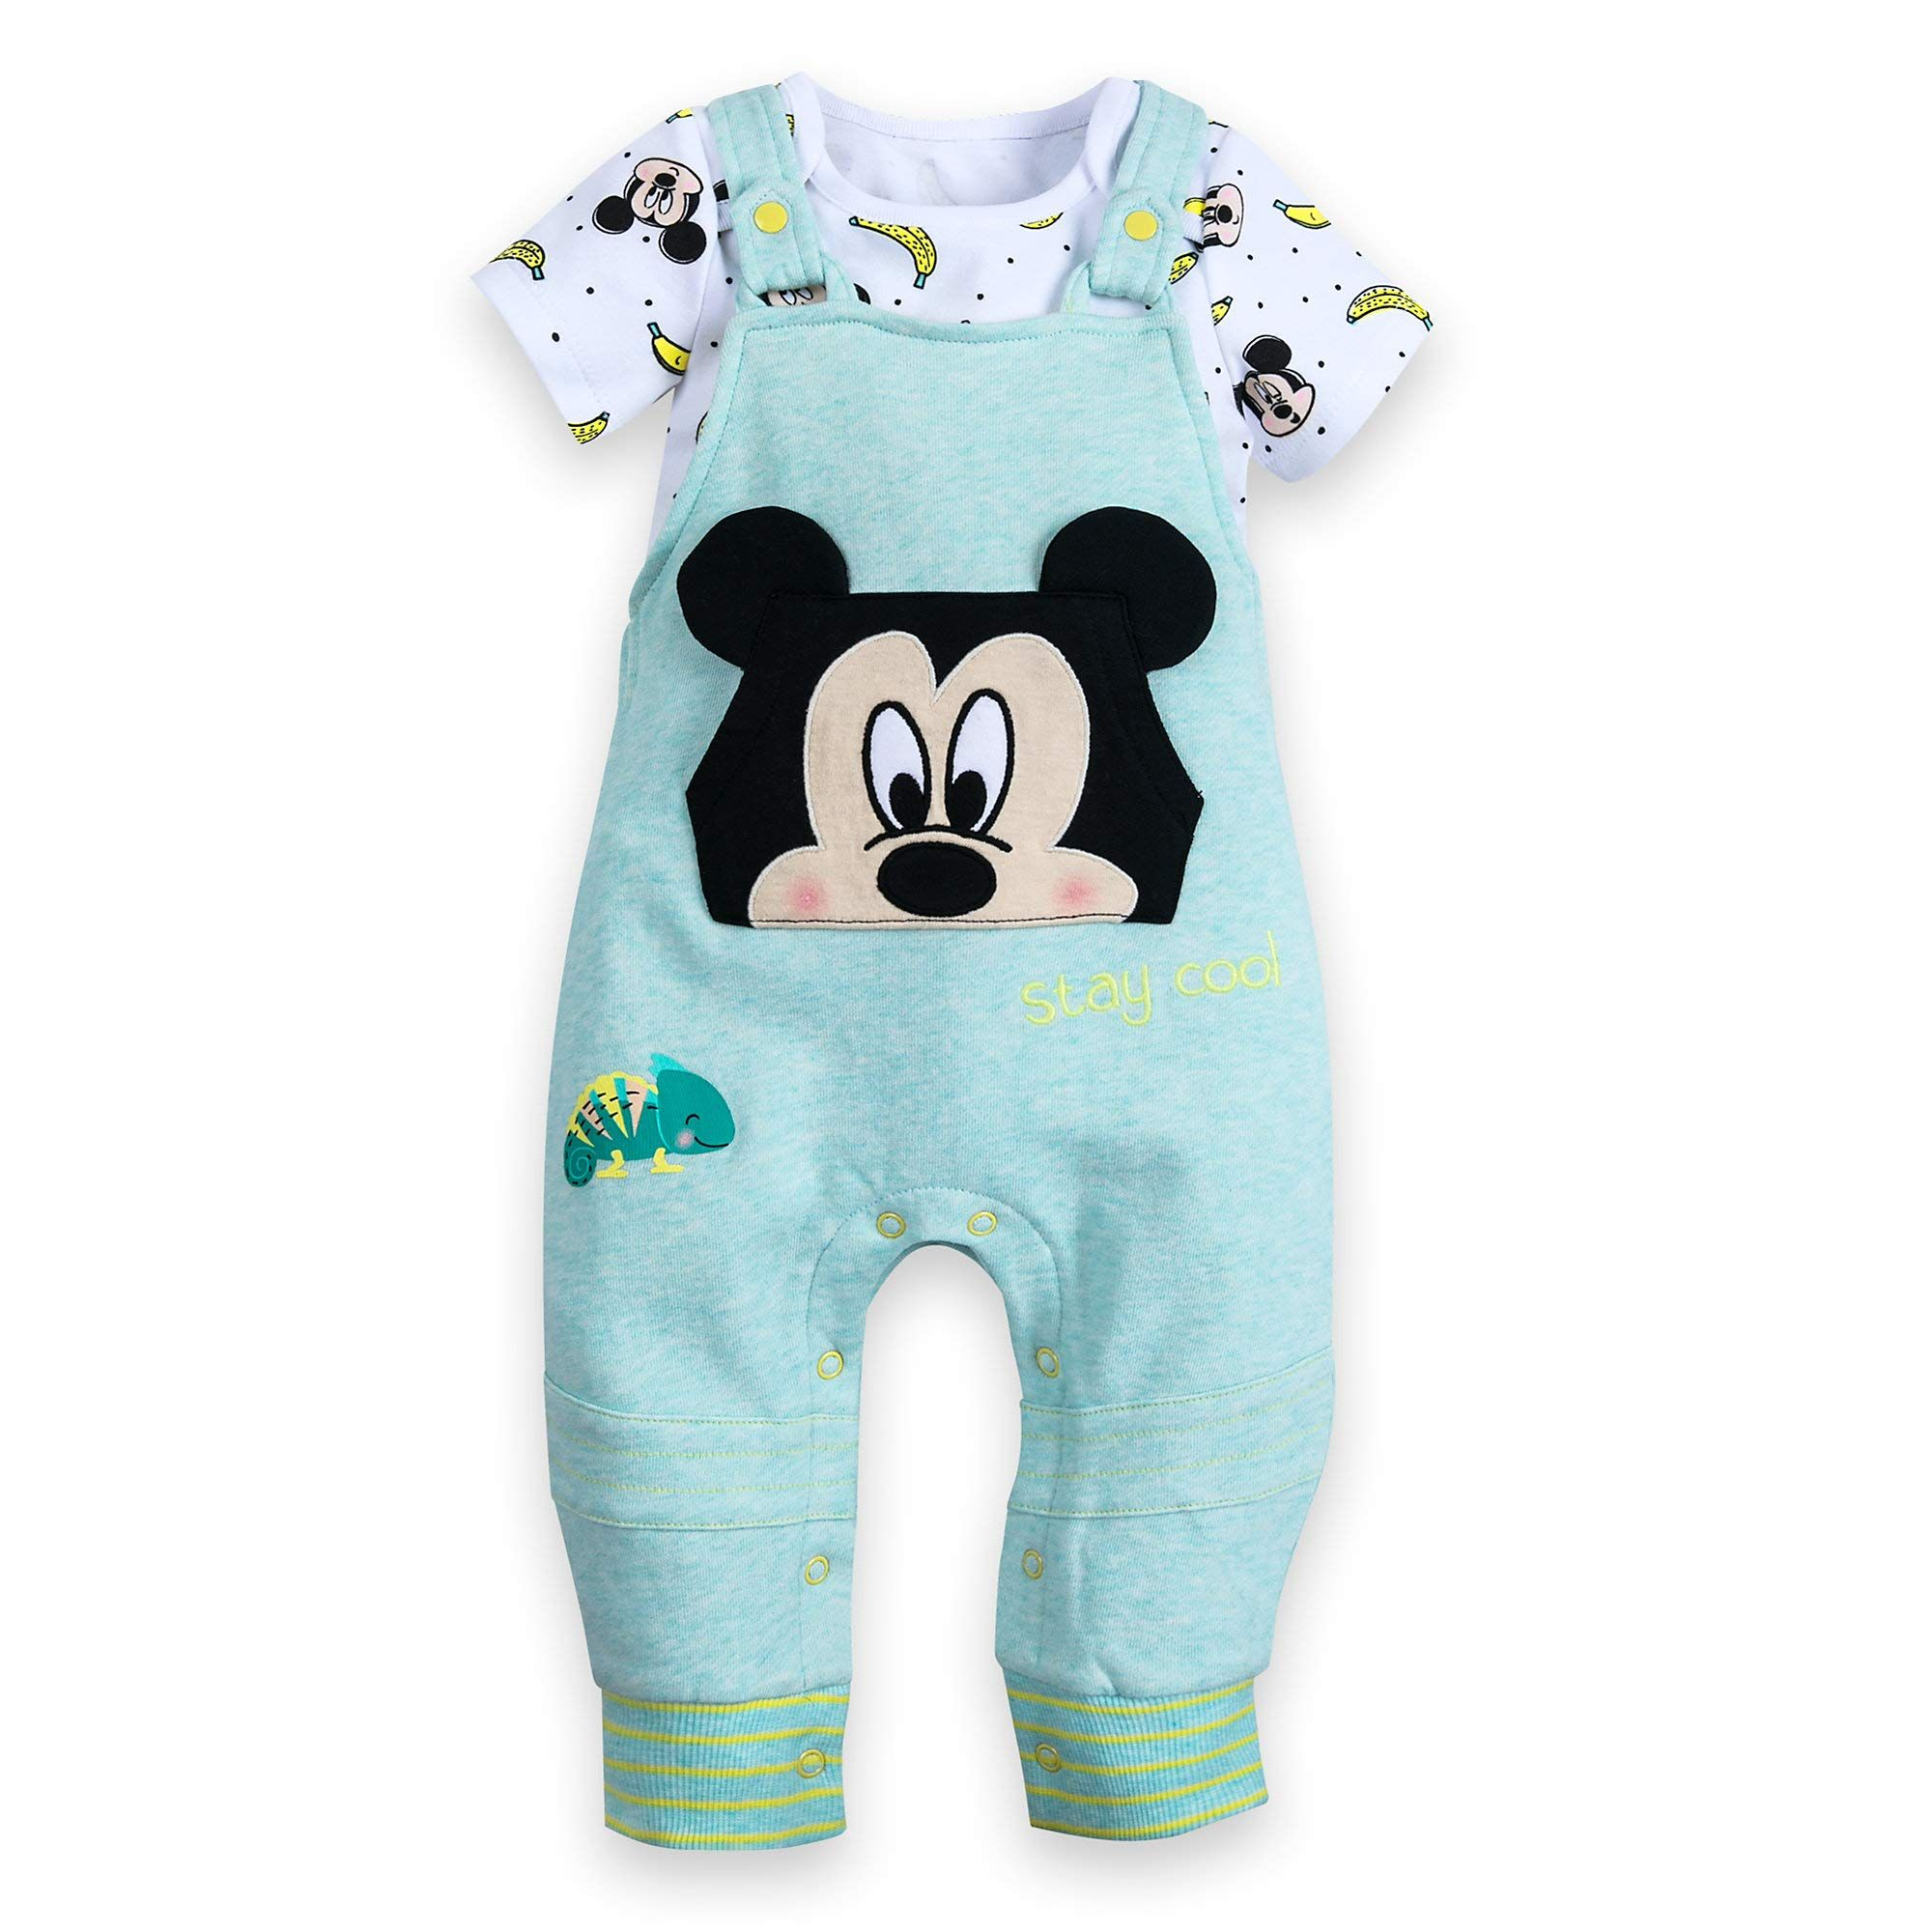 Disney 101 dalmatians Dungree And Bodysuit Outfit For Toddler Girls